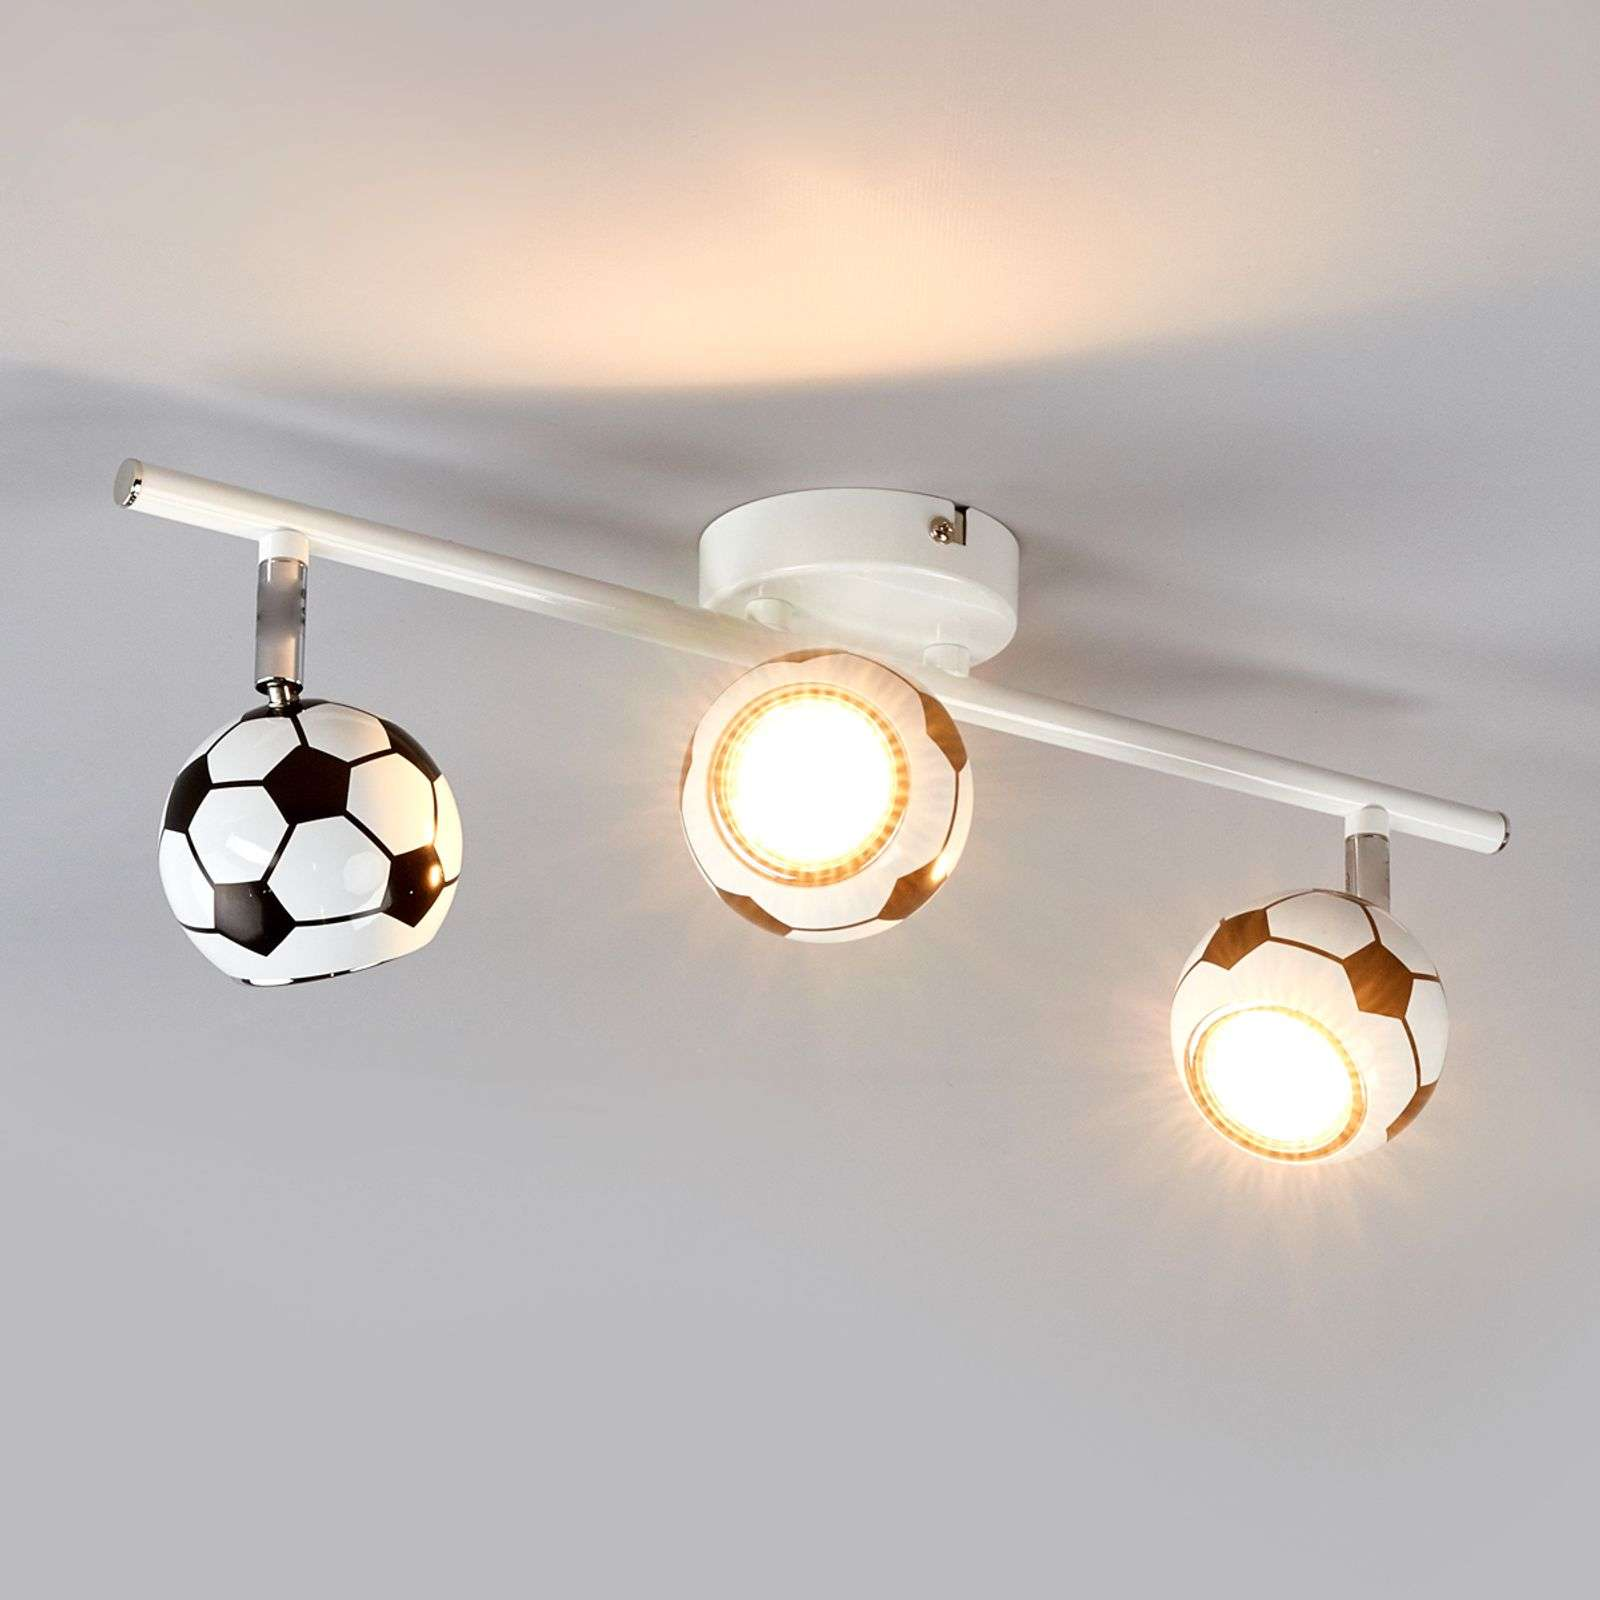 3-lichts Voetbal-plafondlamp Play met LED-licht